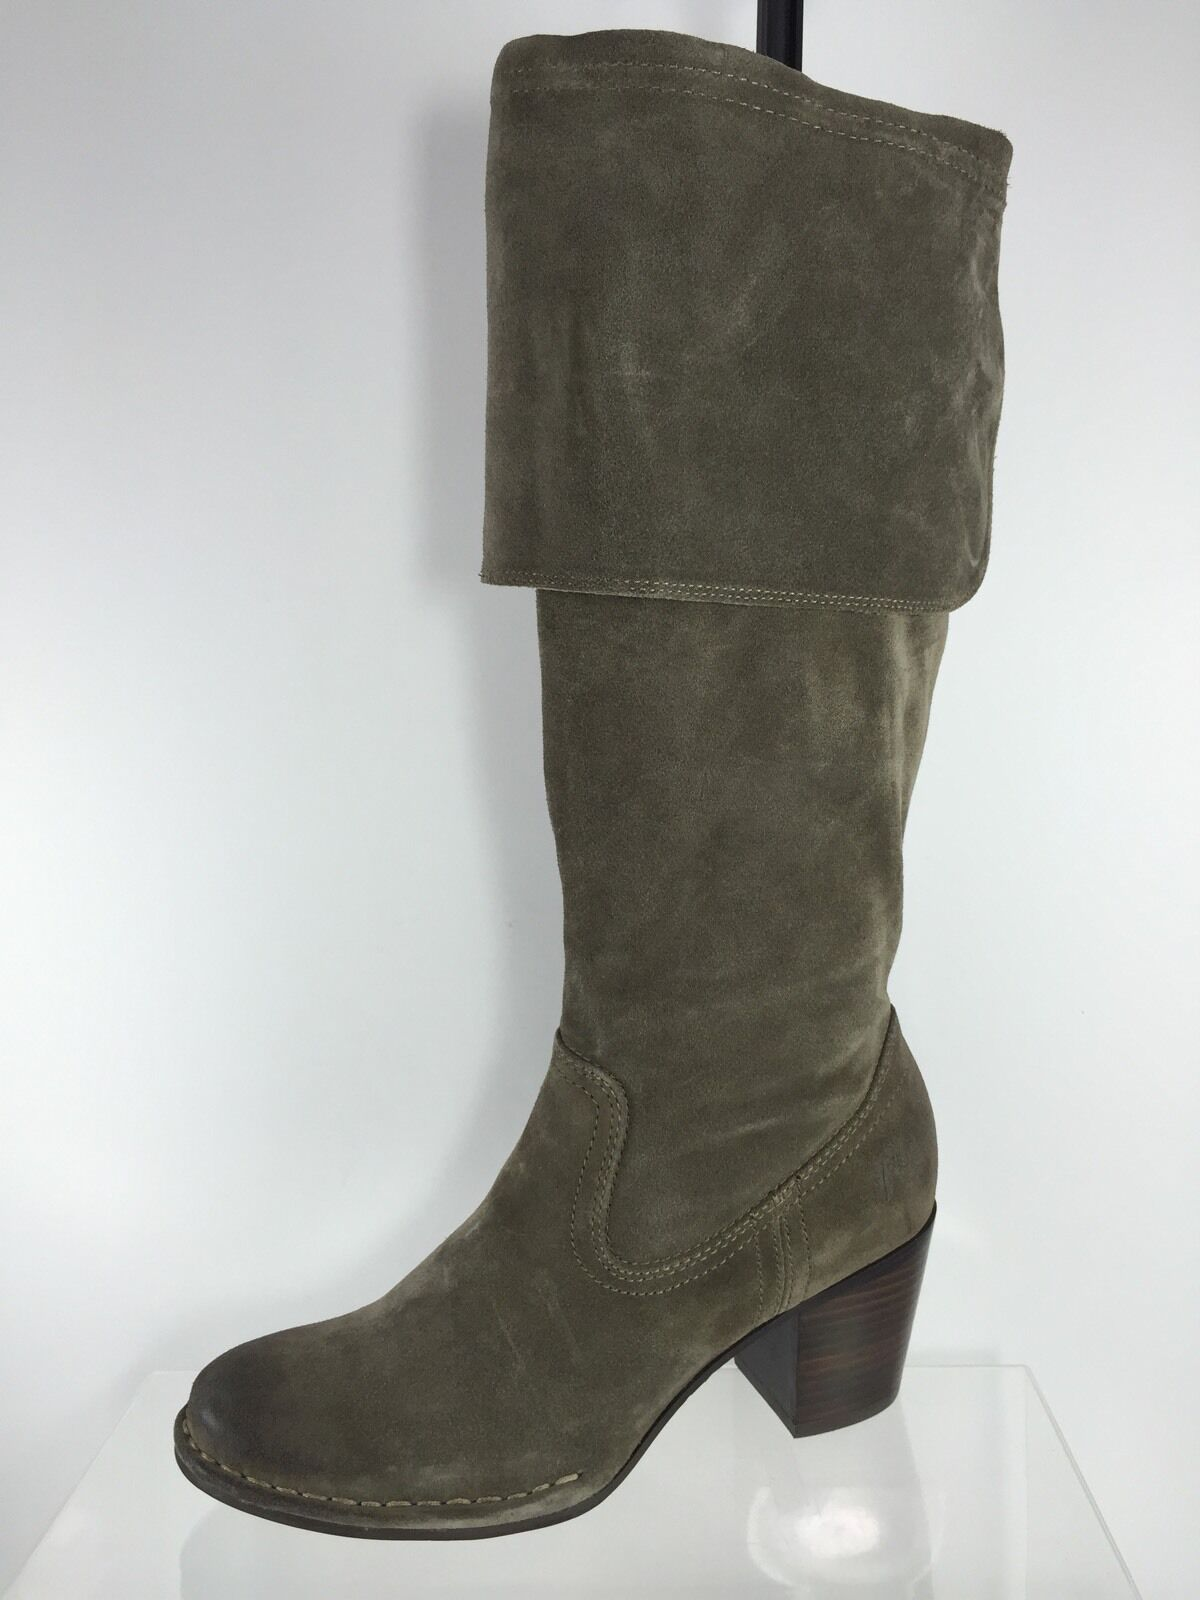 Frye Womens Stone Brown Leather Knee Boots 8 M